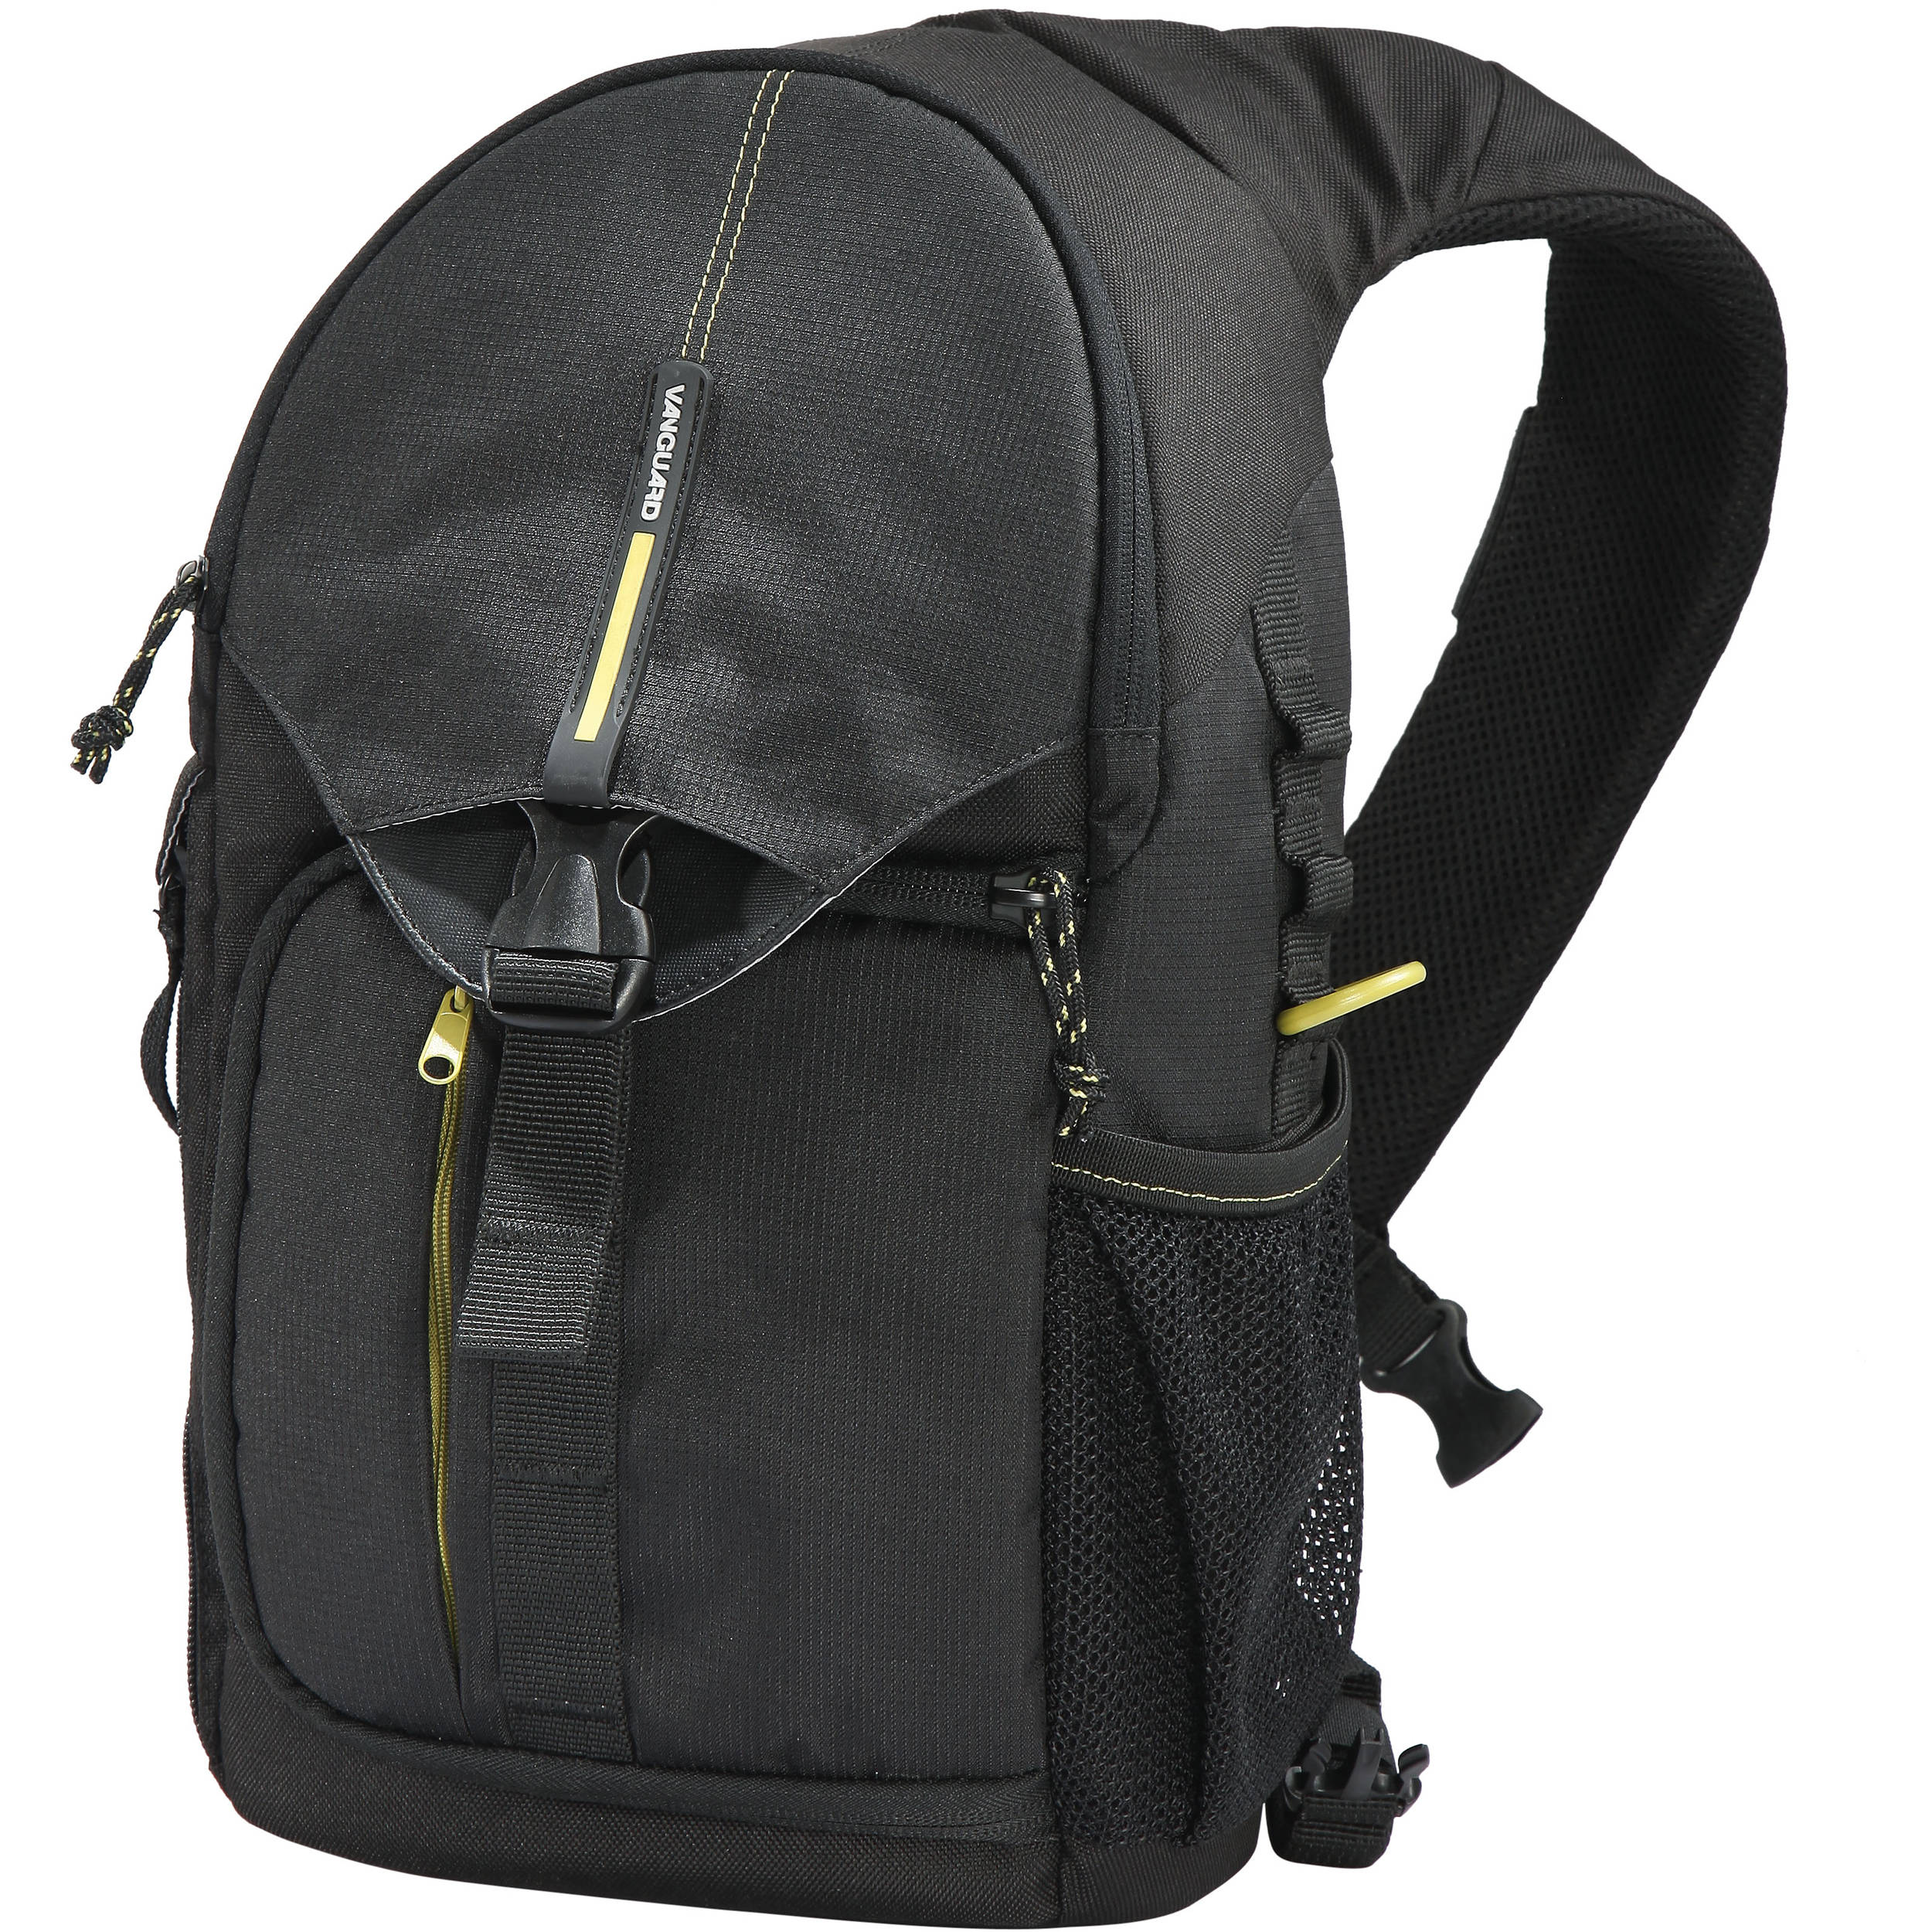 Vanguard BIIN 47 Sling Bag (Black) BIIN 47 BK B&H Photo Video